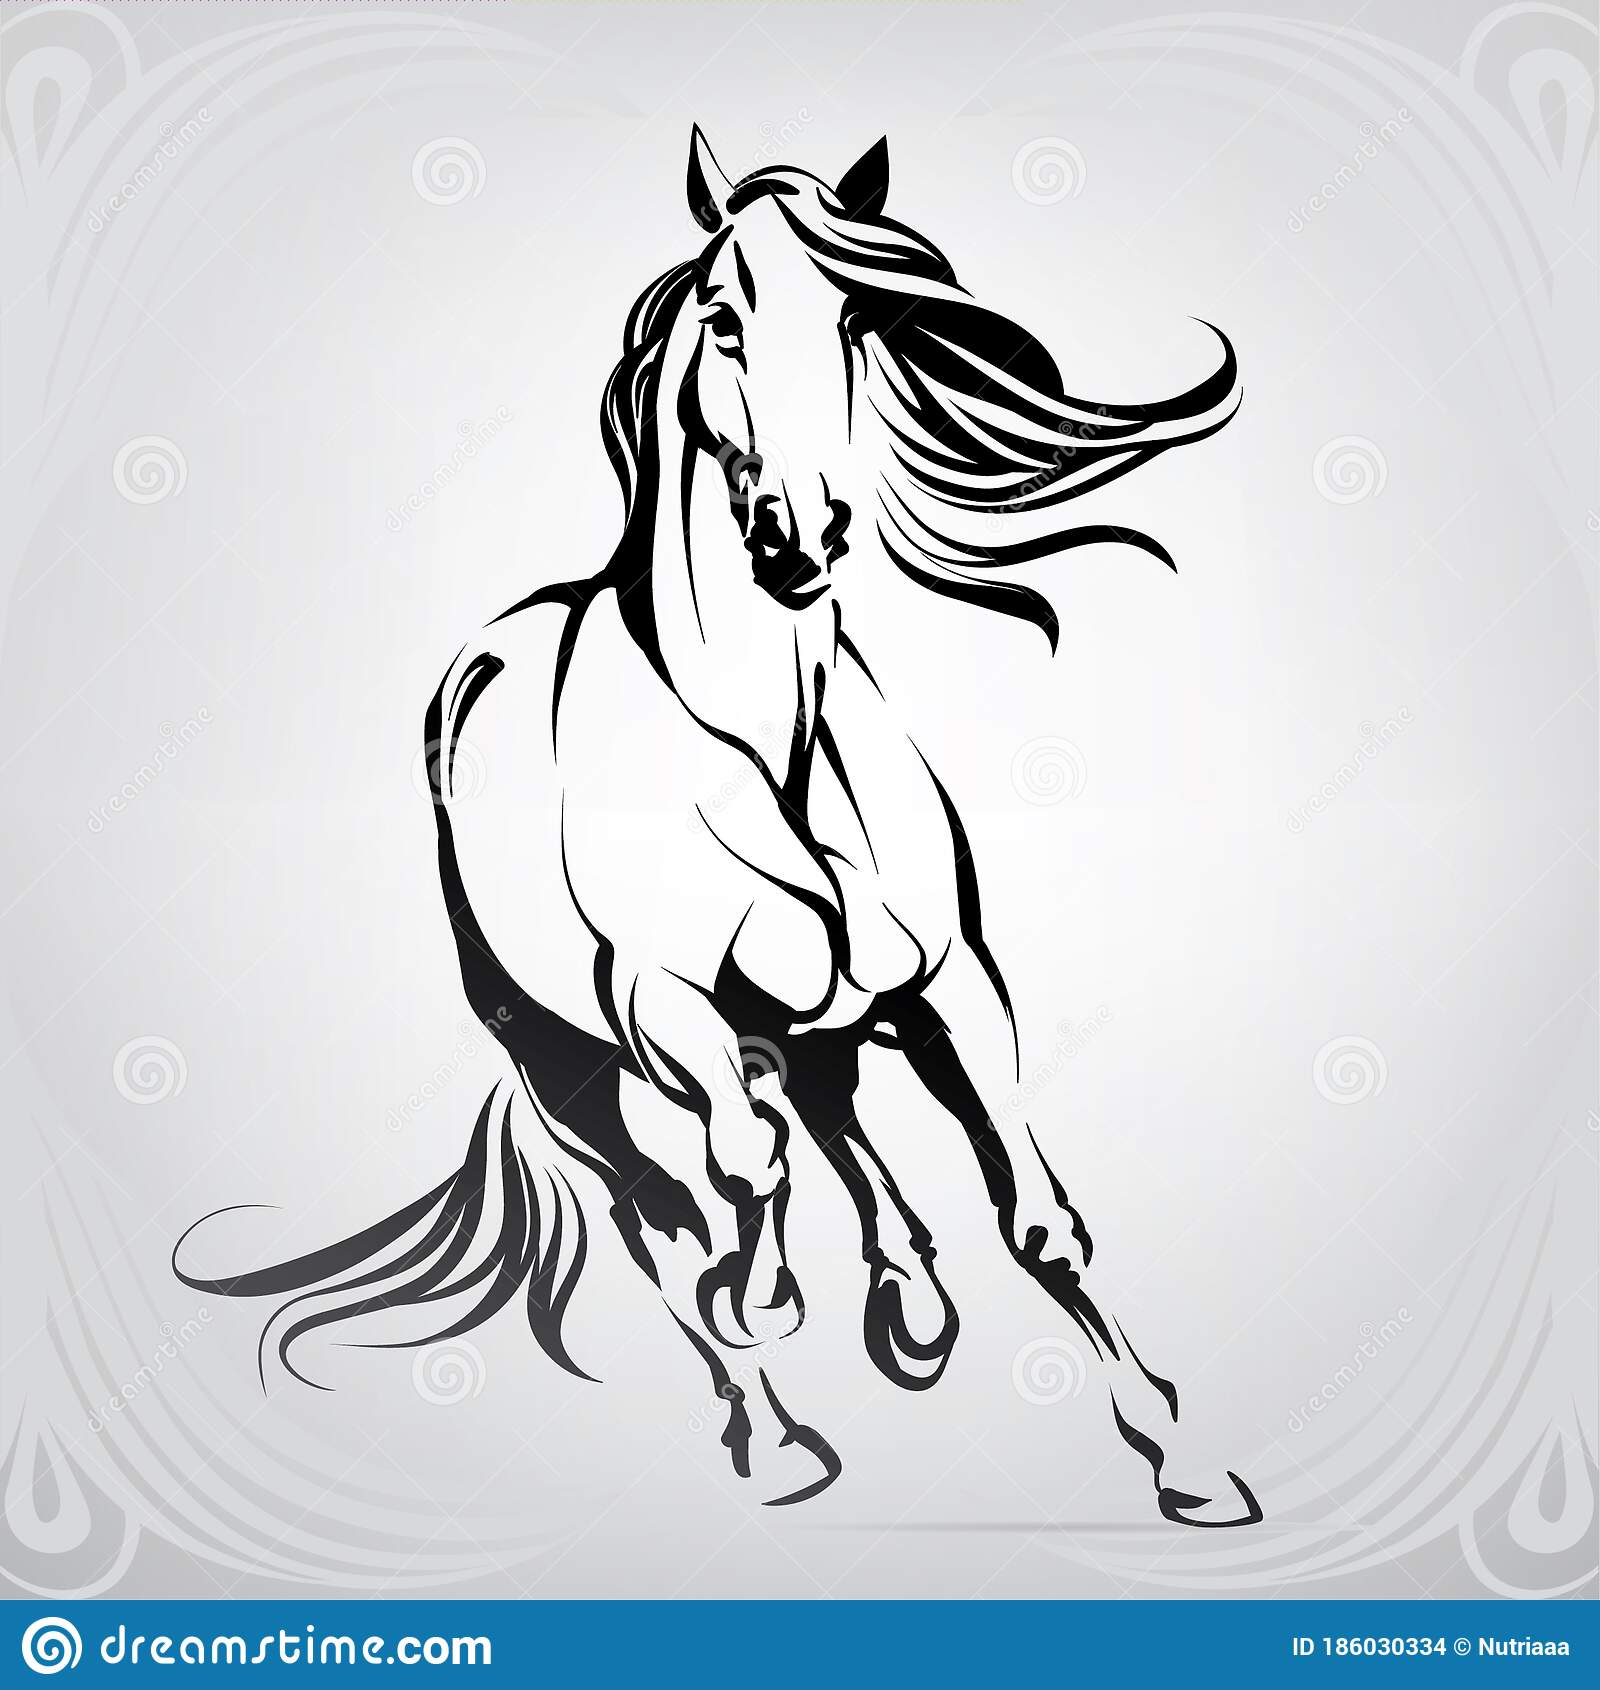 Vector Silhouette Of A Running Horse Vector Illustration Stock Vector Illustration Of Outline Nature 186030334